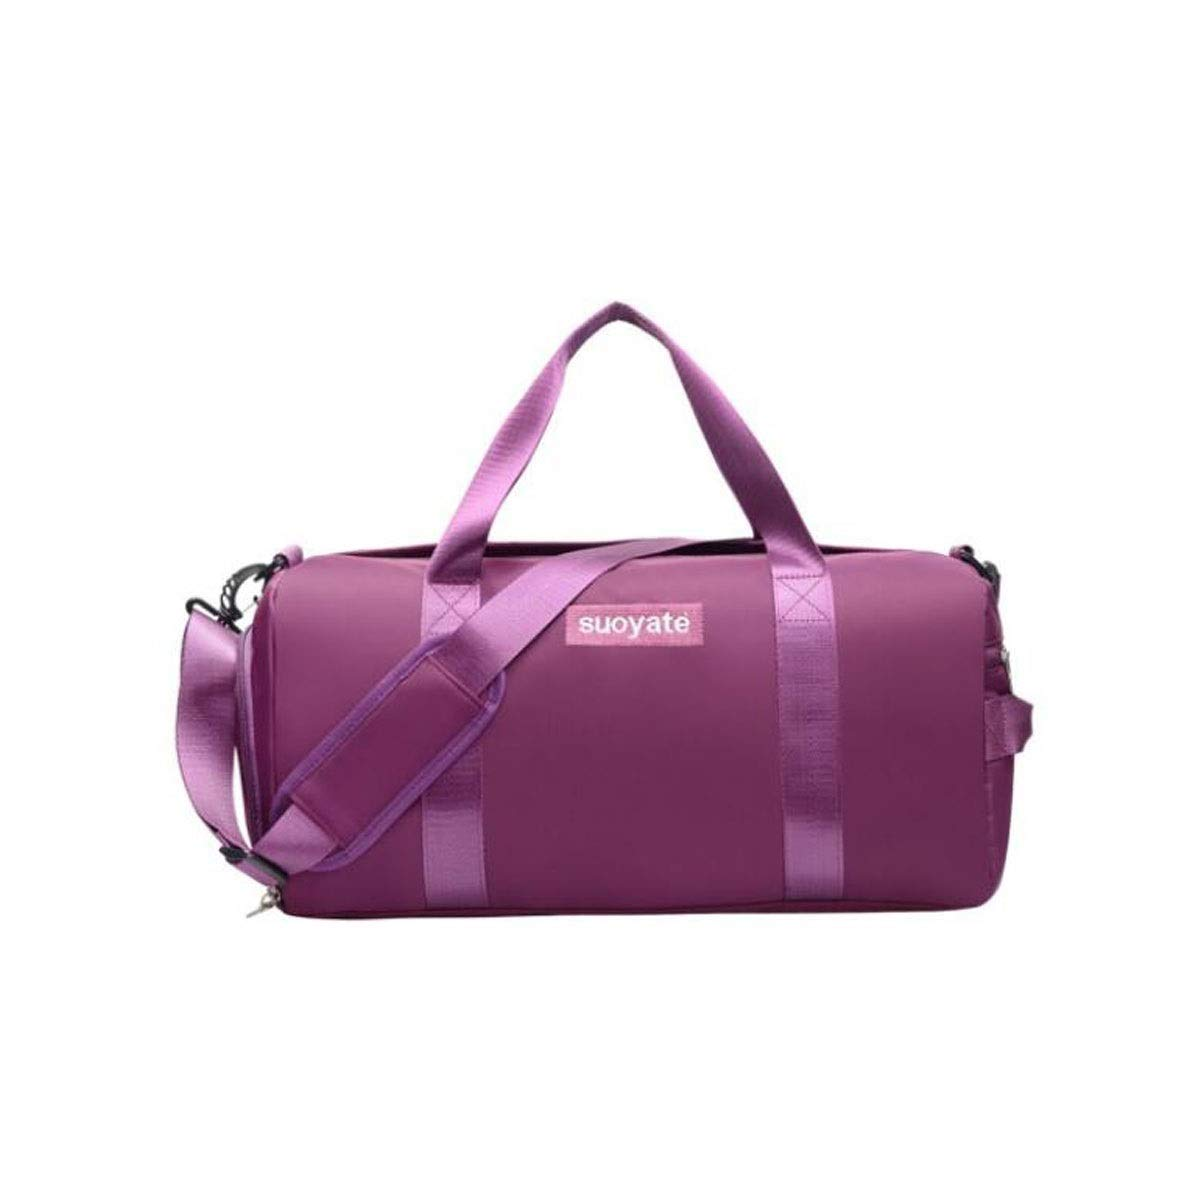 Purple Gaoxingbianlidian Sports Bag, One Shoulder Yoga Bag, Portable Sports Training Bag, Wet and Dry Separation Swimming Bag, Large Capacity Gym Bag, Purple Size  46  20  30cm Affordable